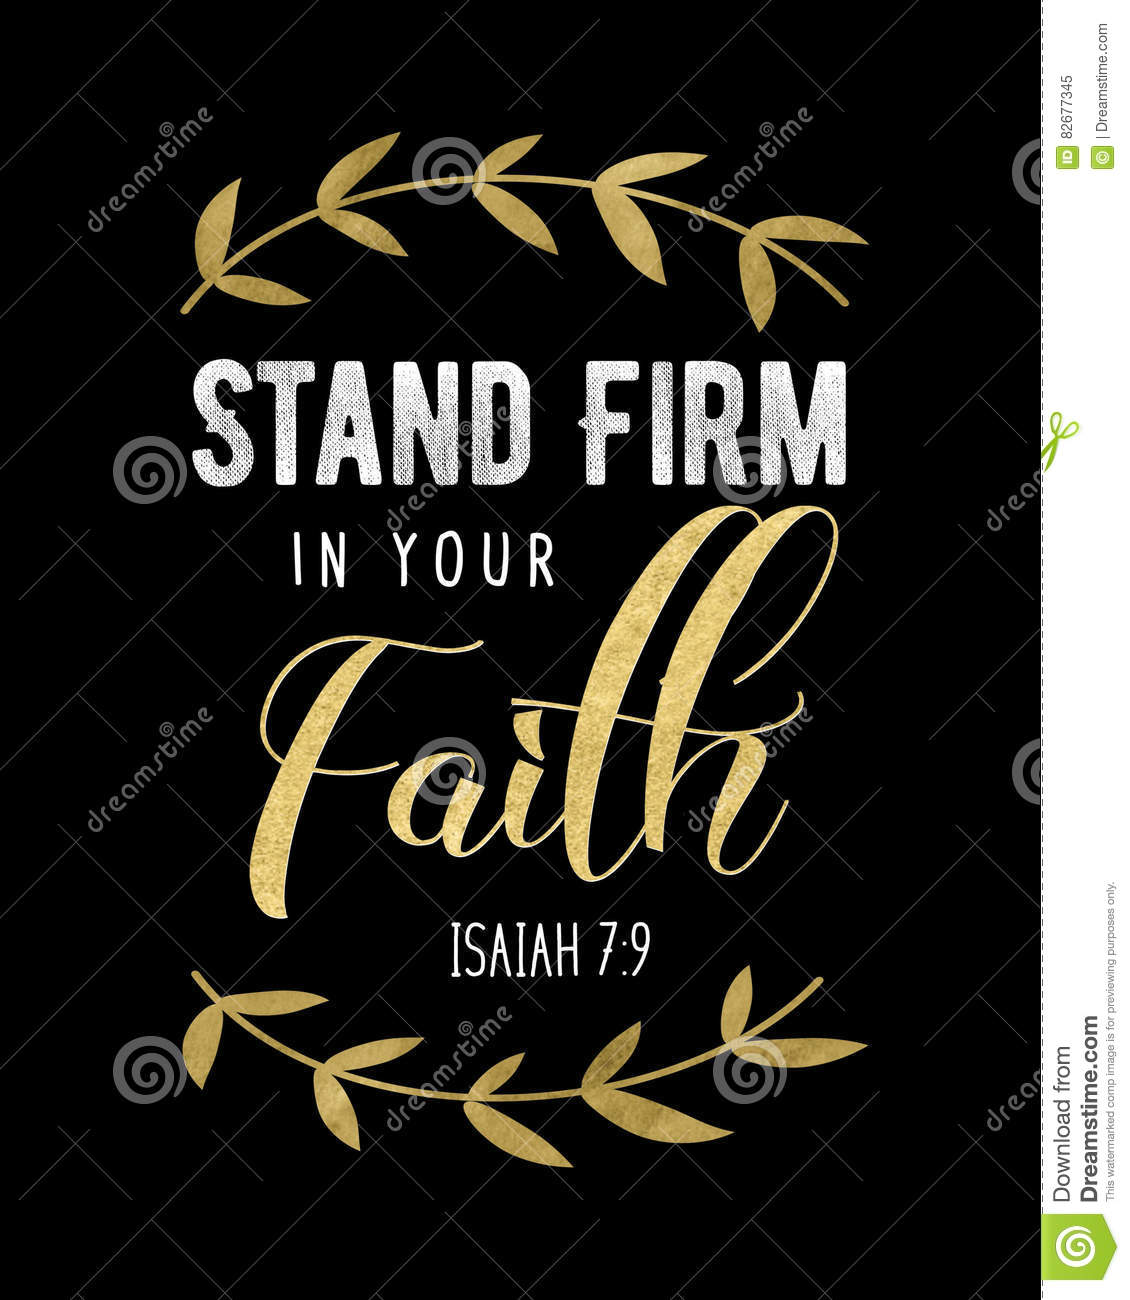 Stand Firm Designs : Stand firm in your faith stock illustration